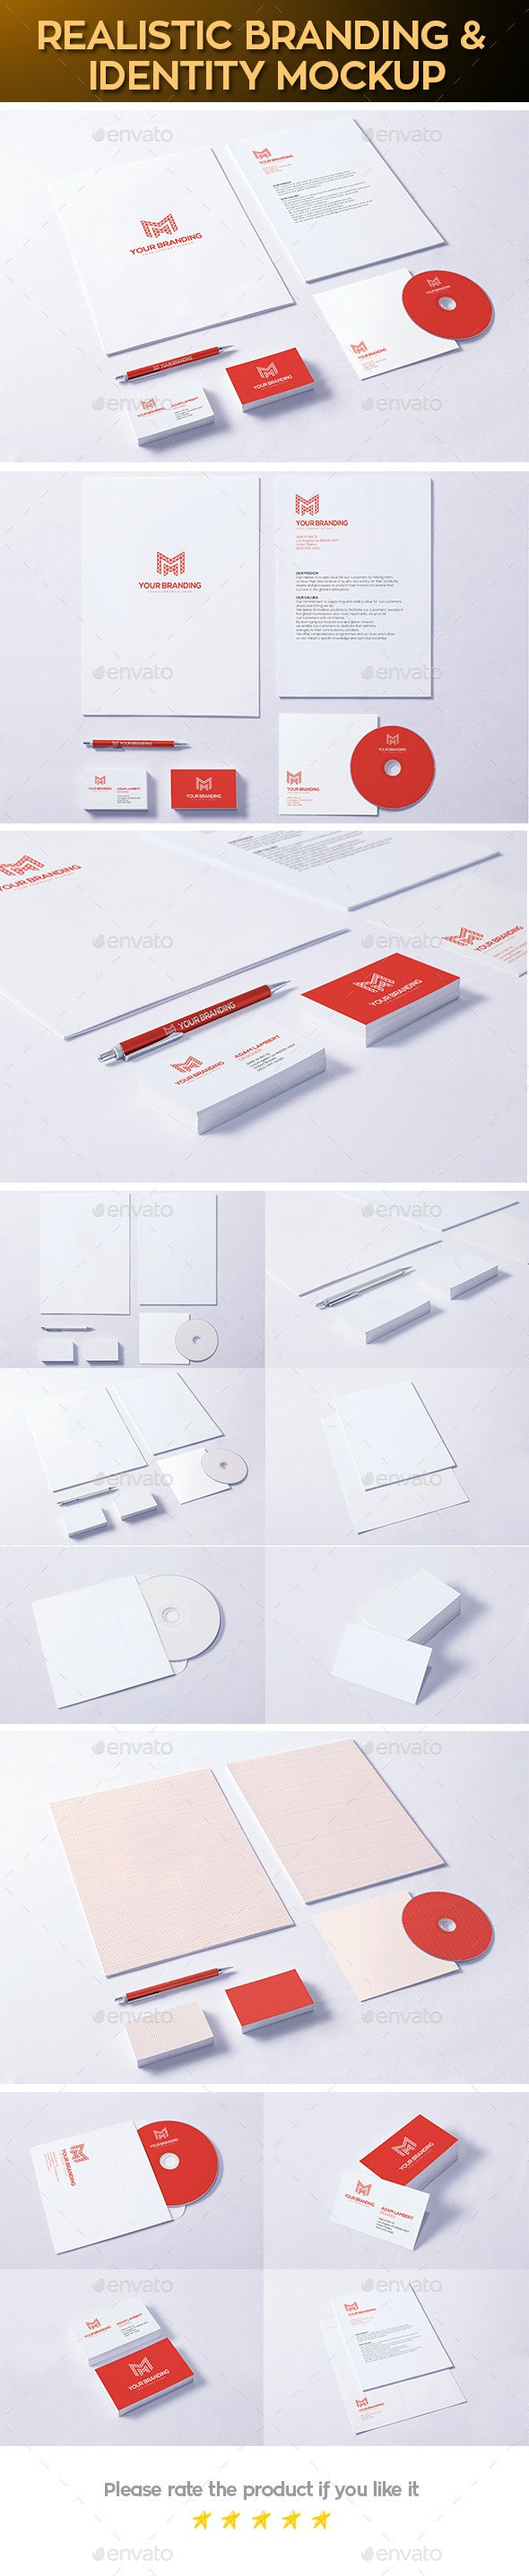 Realistic Branding & Identity Design Mock-up - Stationery Print